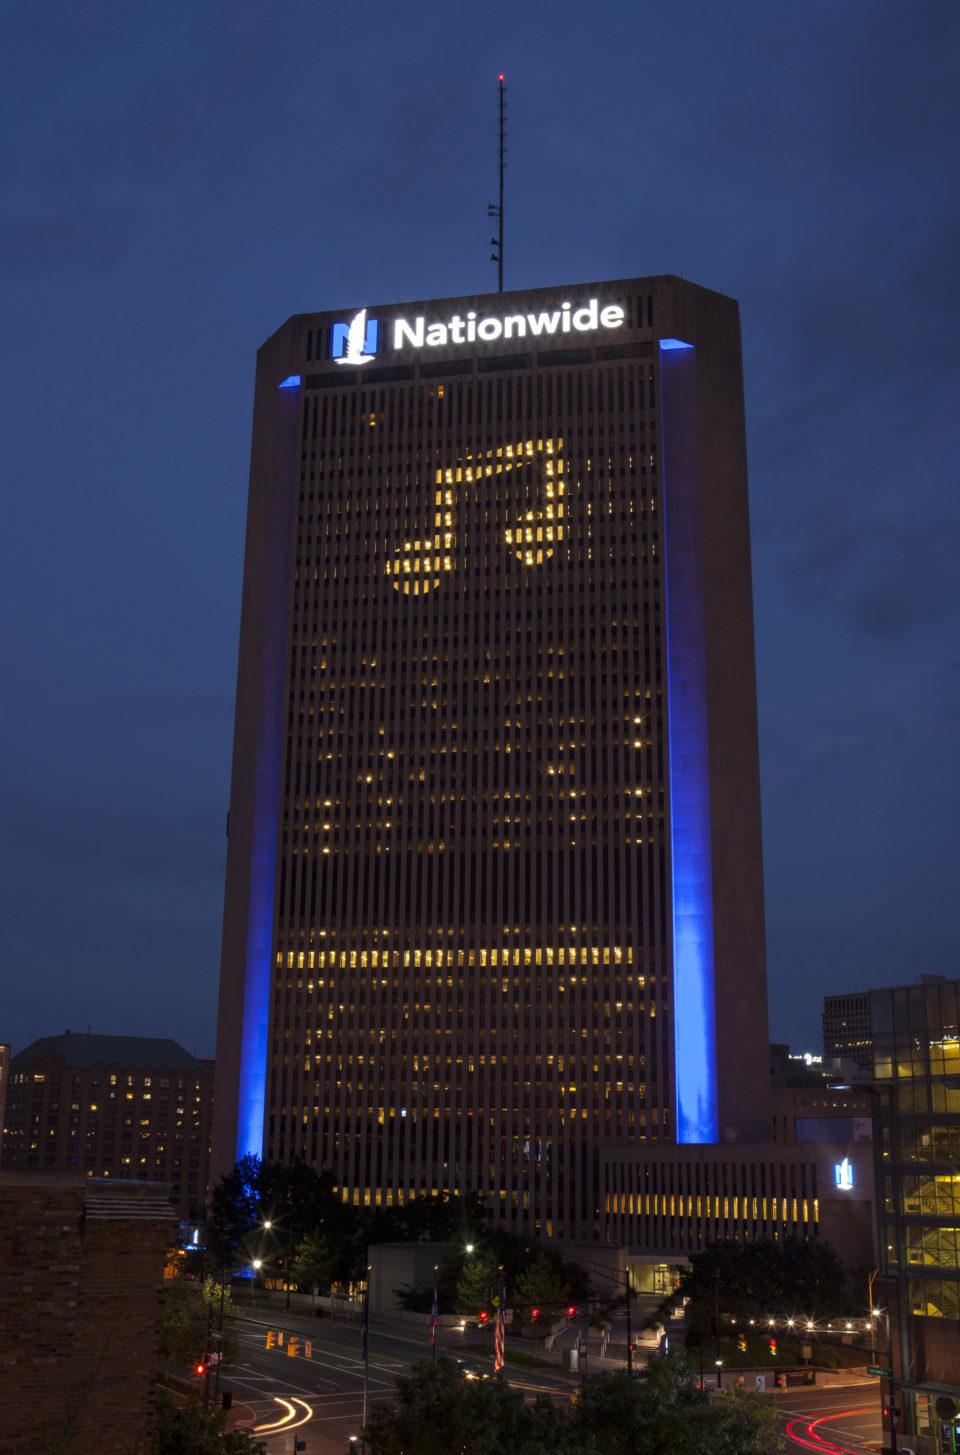 Nationwide Building